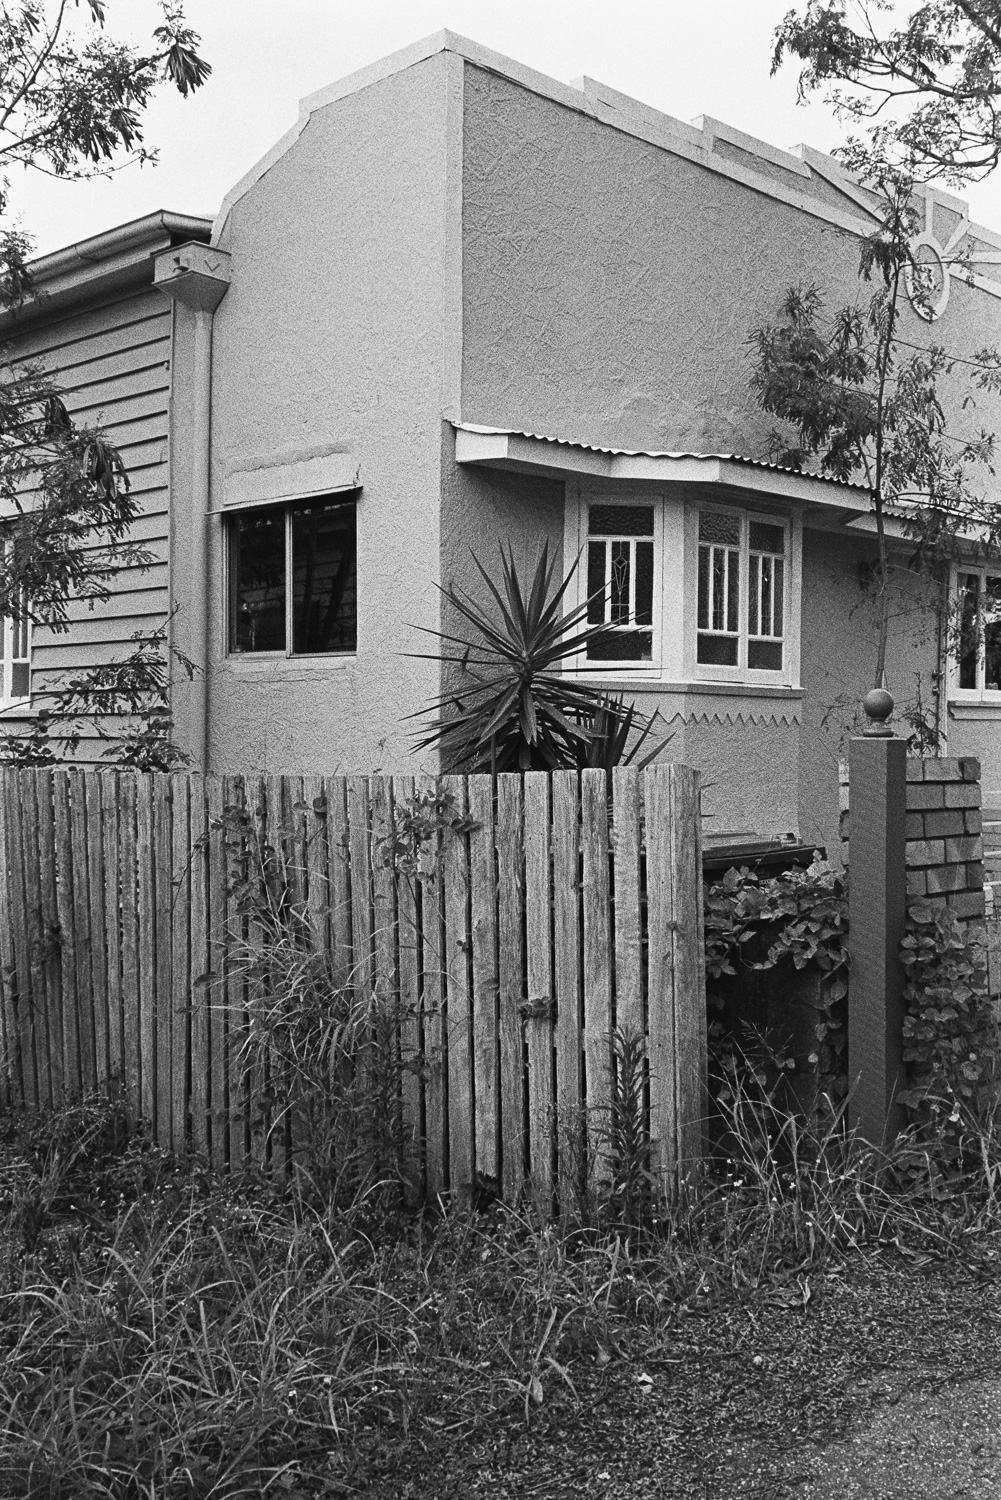 Some very curious architecture in South Brisbane